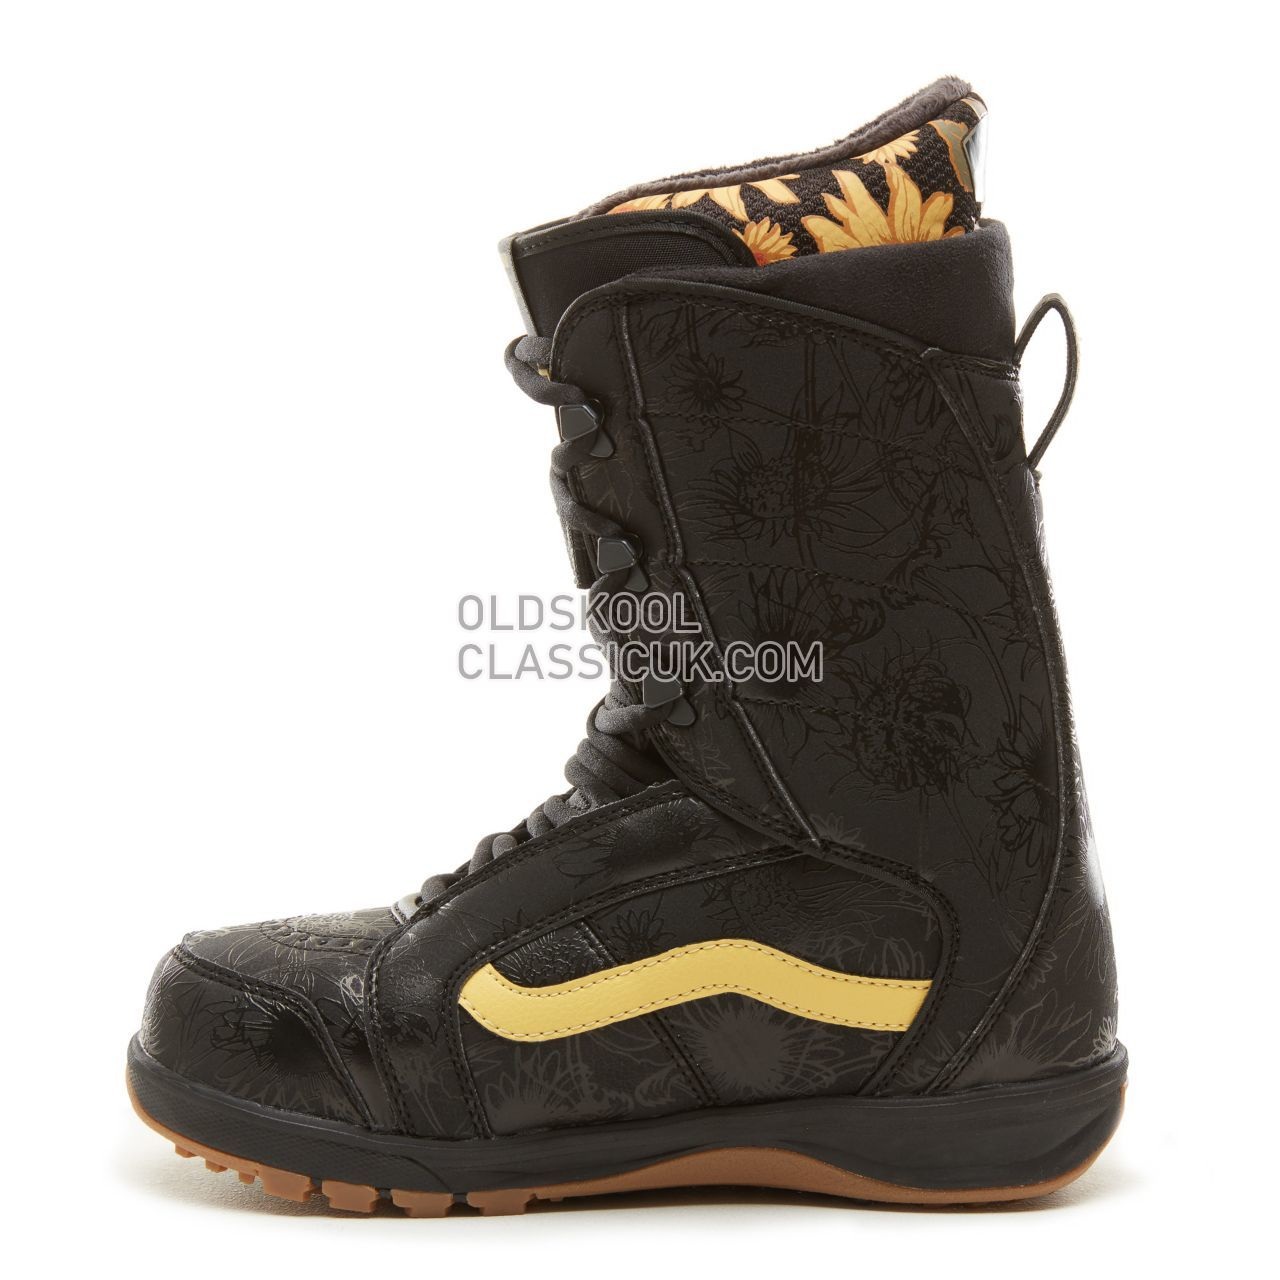 Vans Womens Mary Rand Ferra Pro Snowboots Womens Black/Yellow (Mary Rand) VA3TFRREQ Shoes